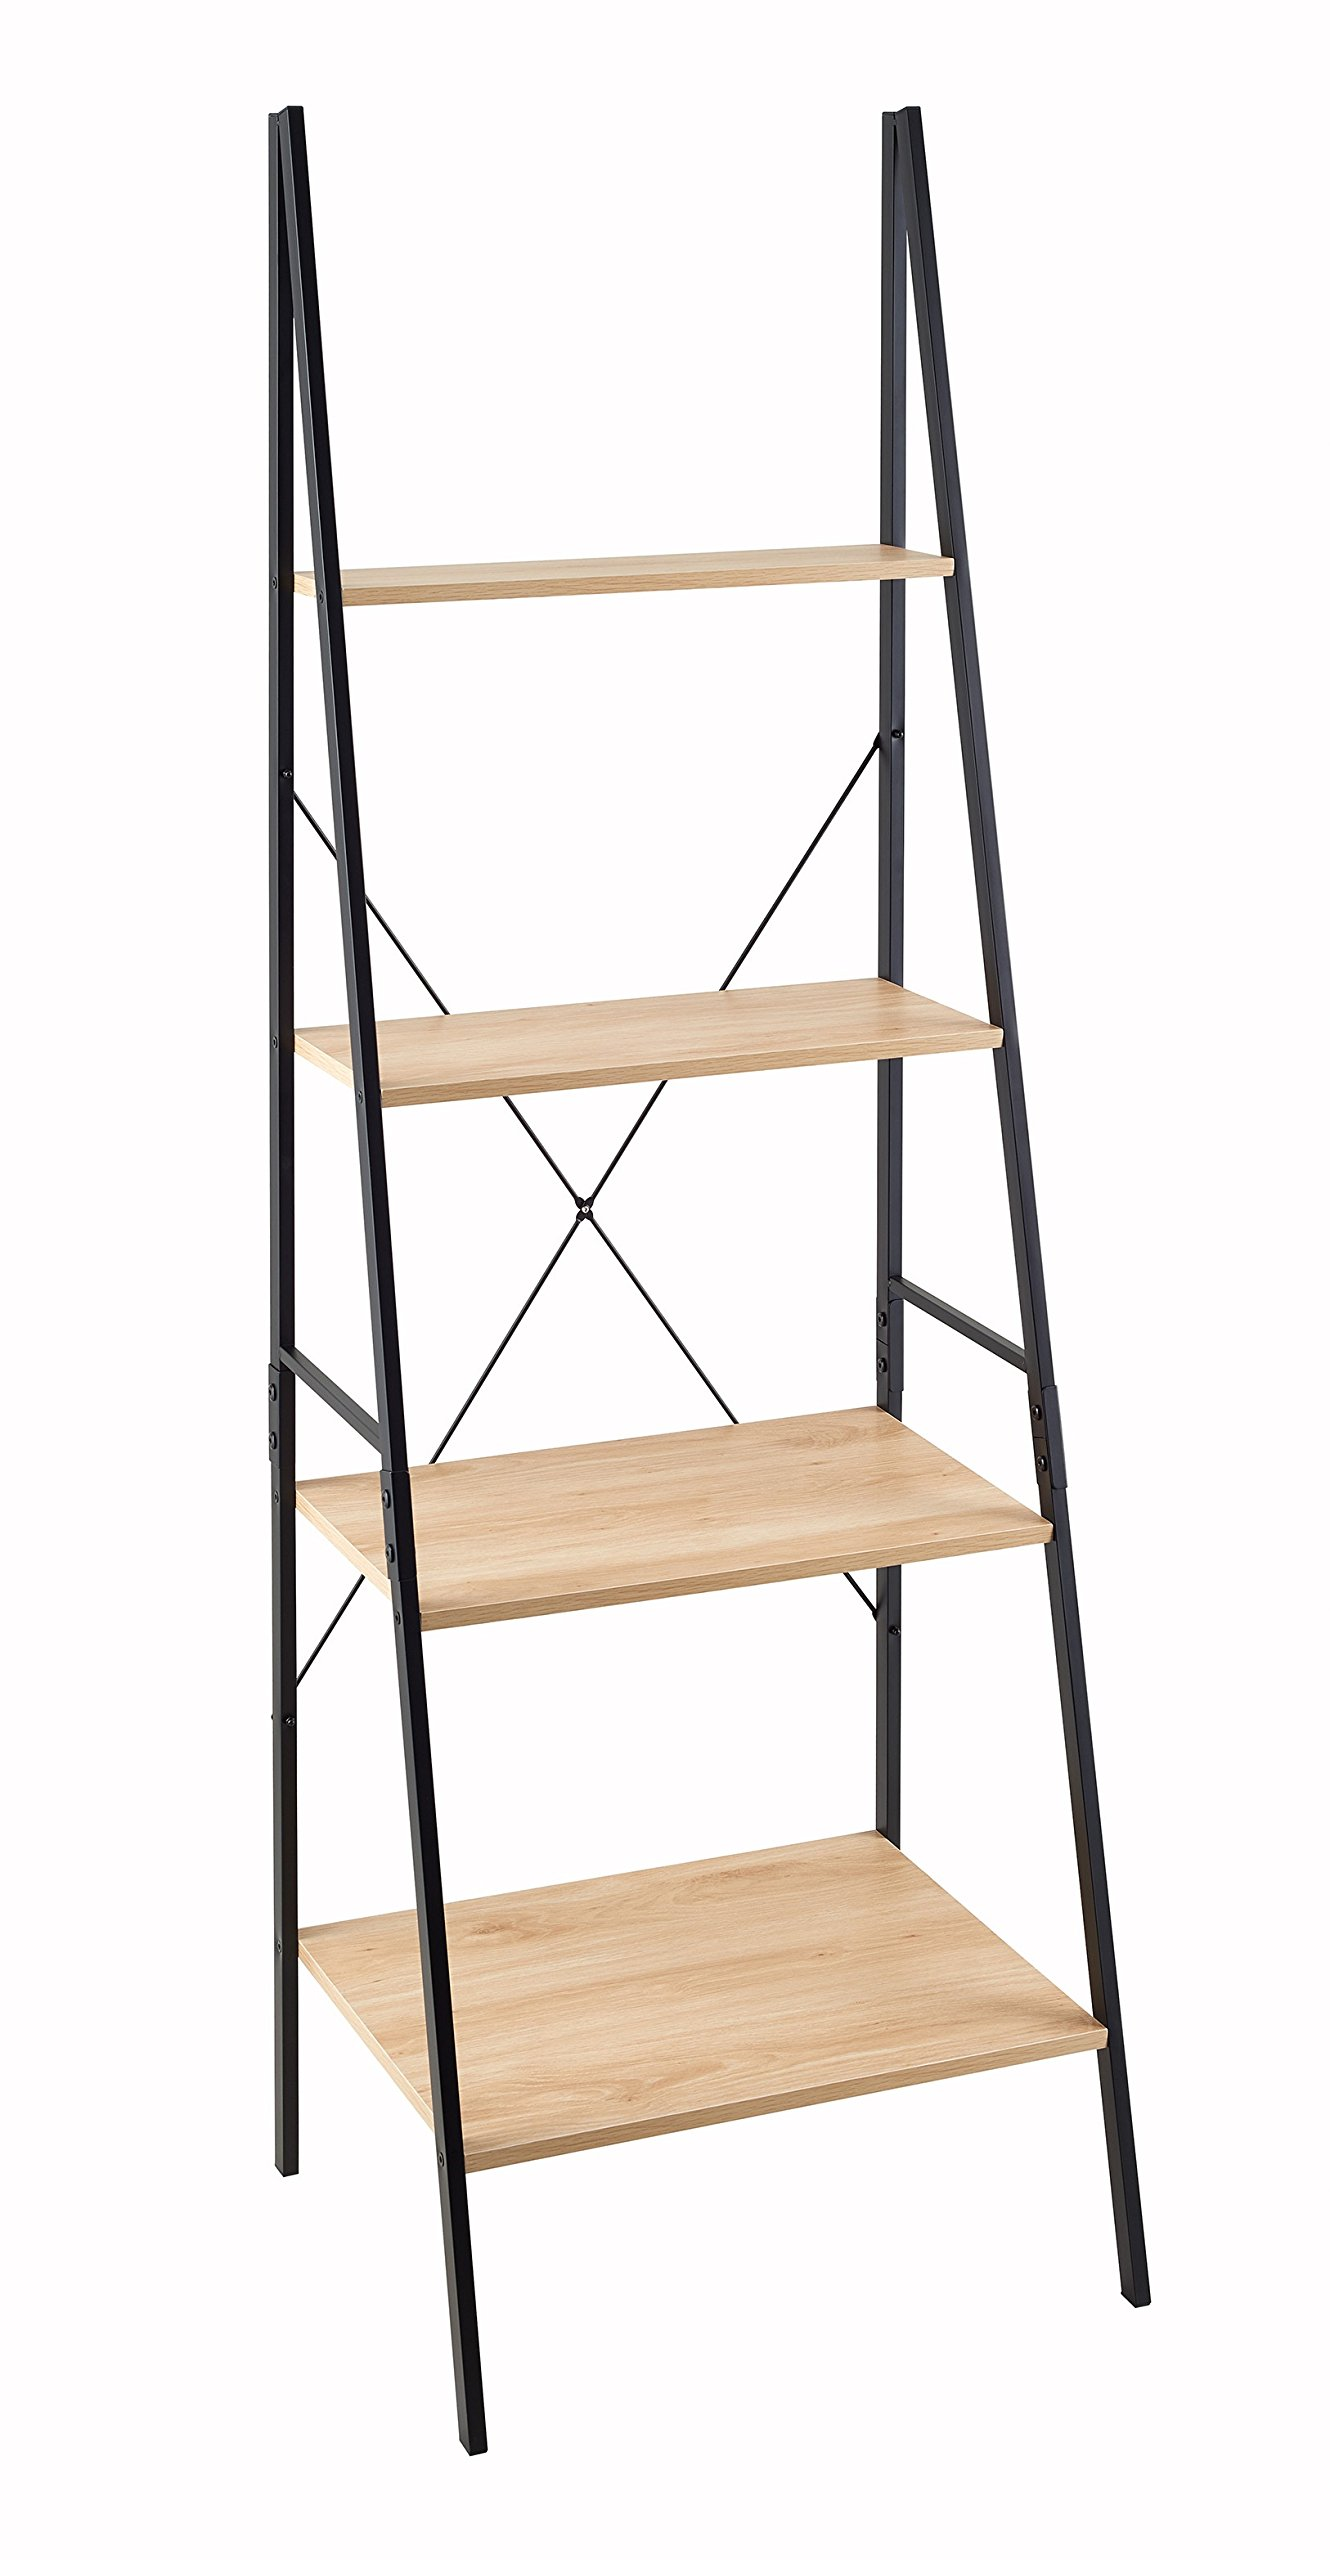 ClosetMaid 1312 4-Tier Wood Ladder Shelf Bookcase, Natural